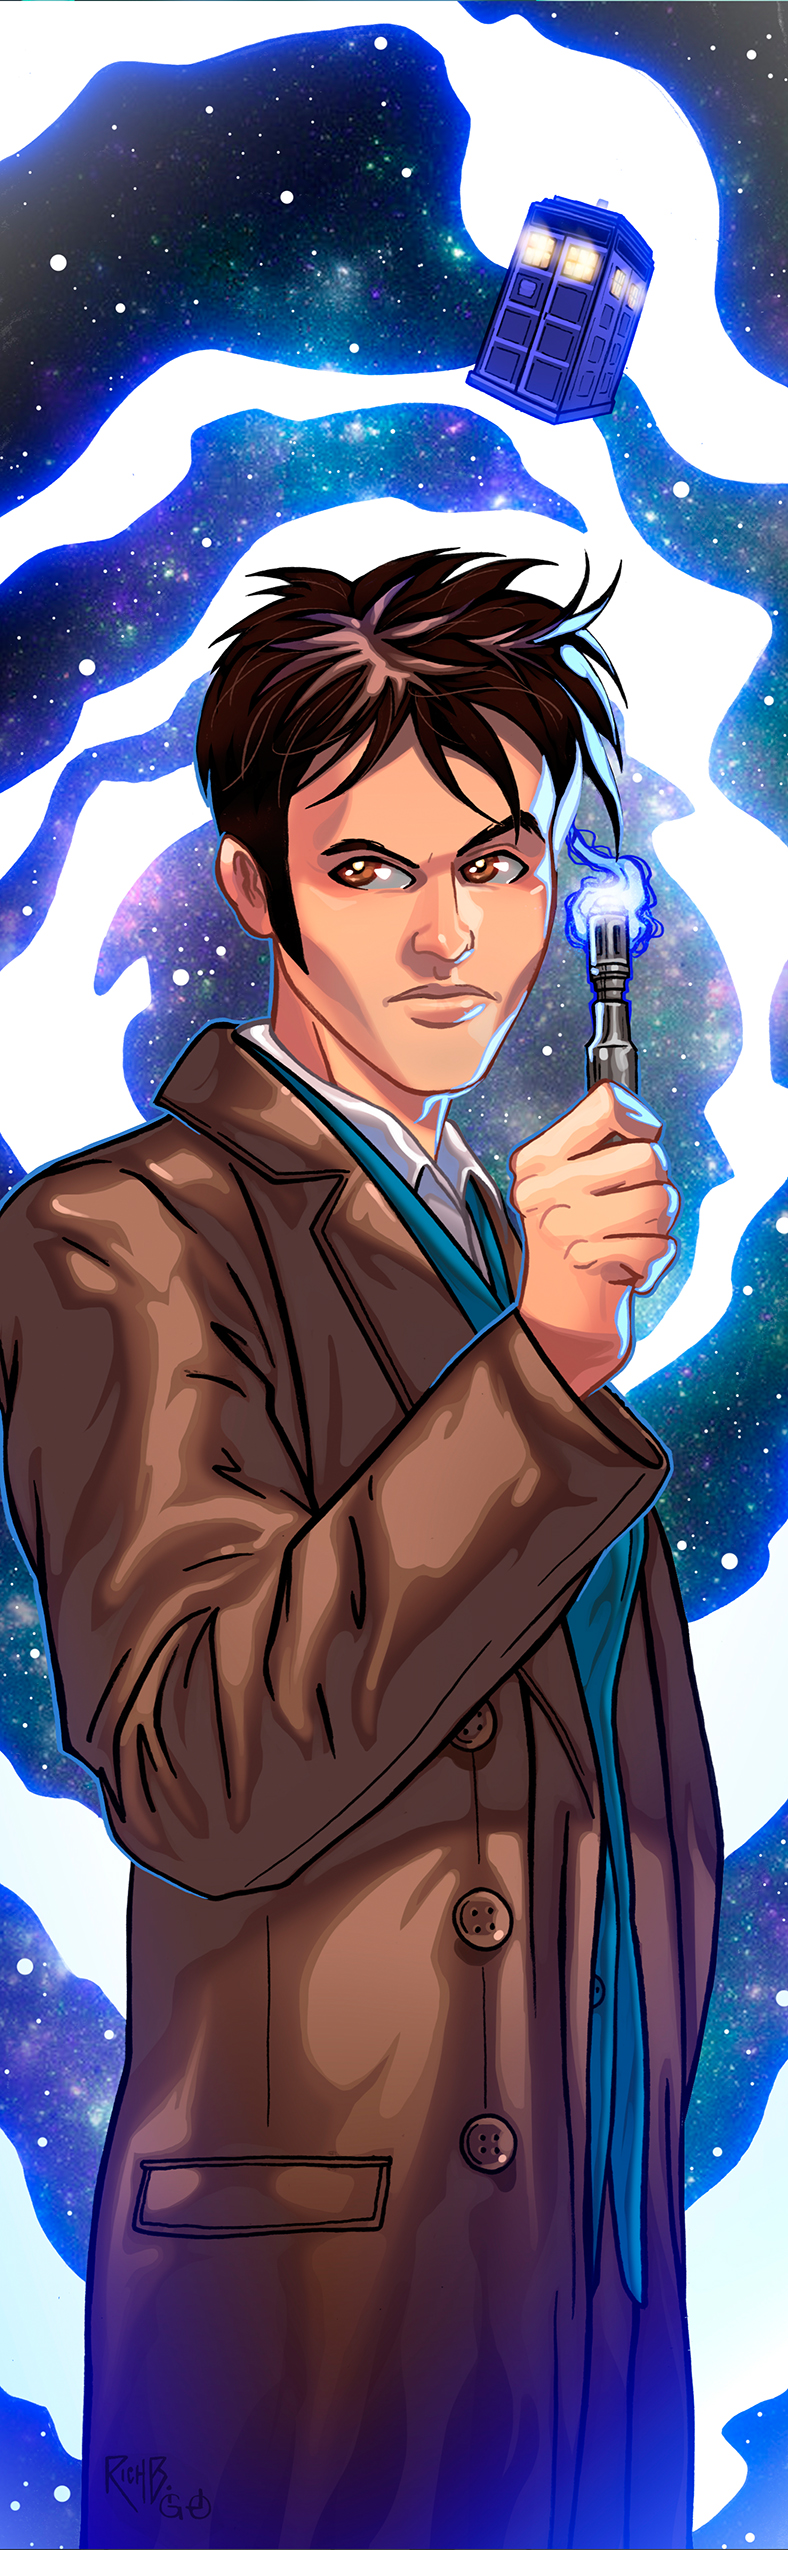 Doctor Who David Tennant Panel Art by RichBernatovech